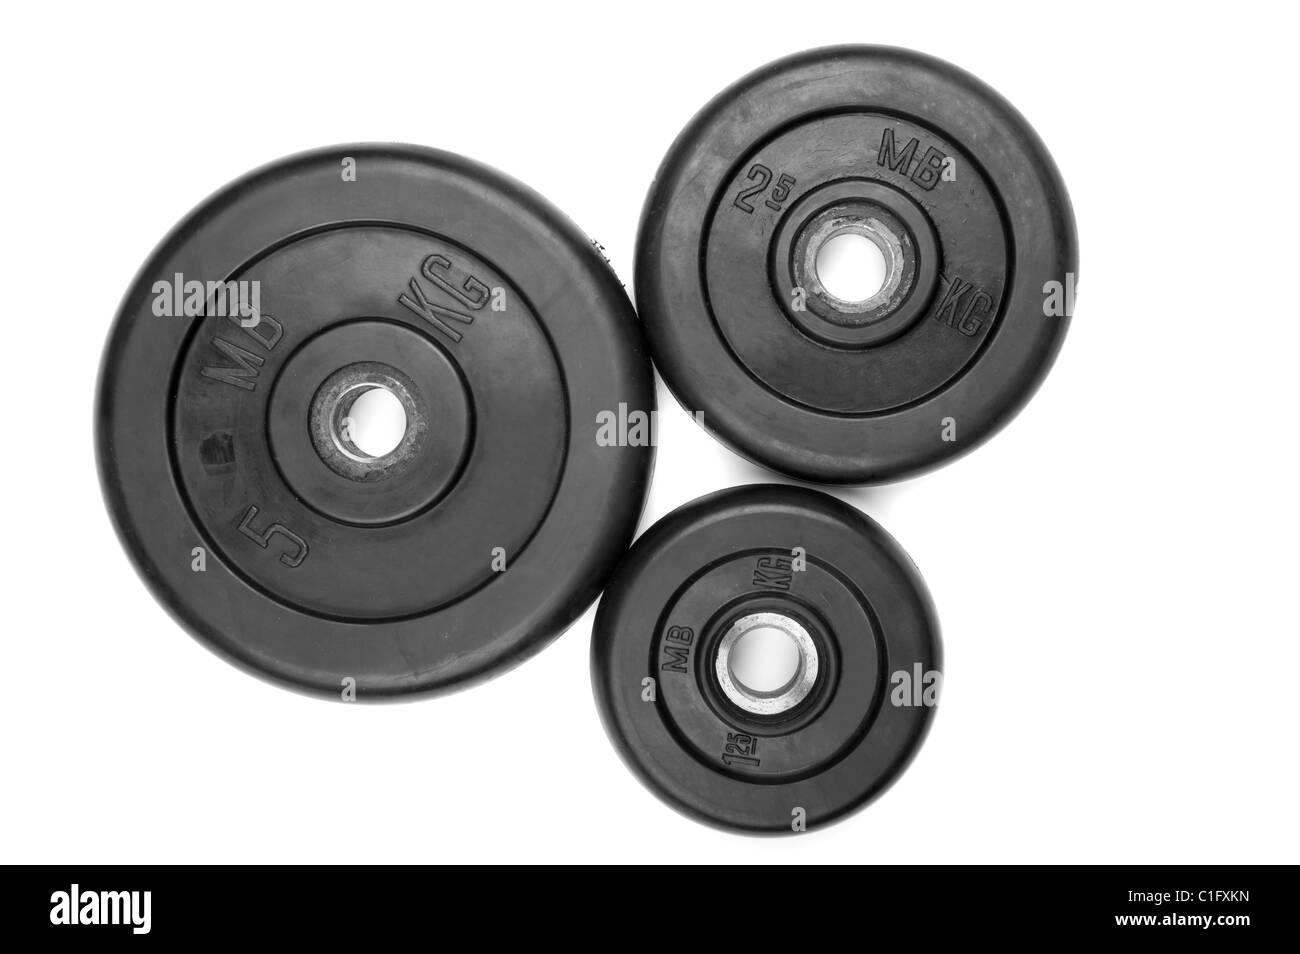 object on white - dumbbell close up - Stock Image